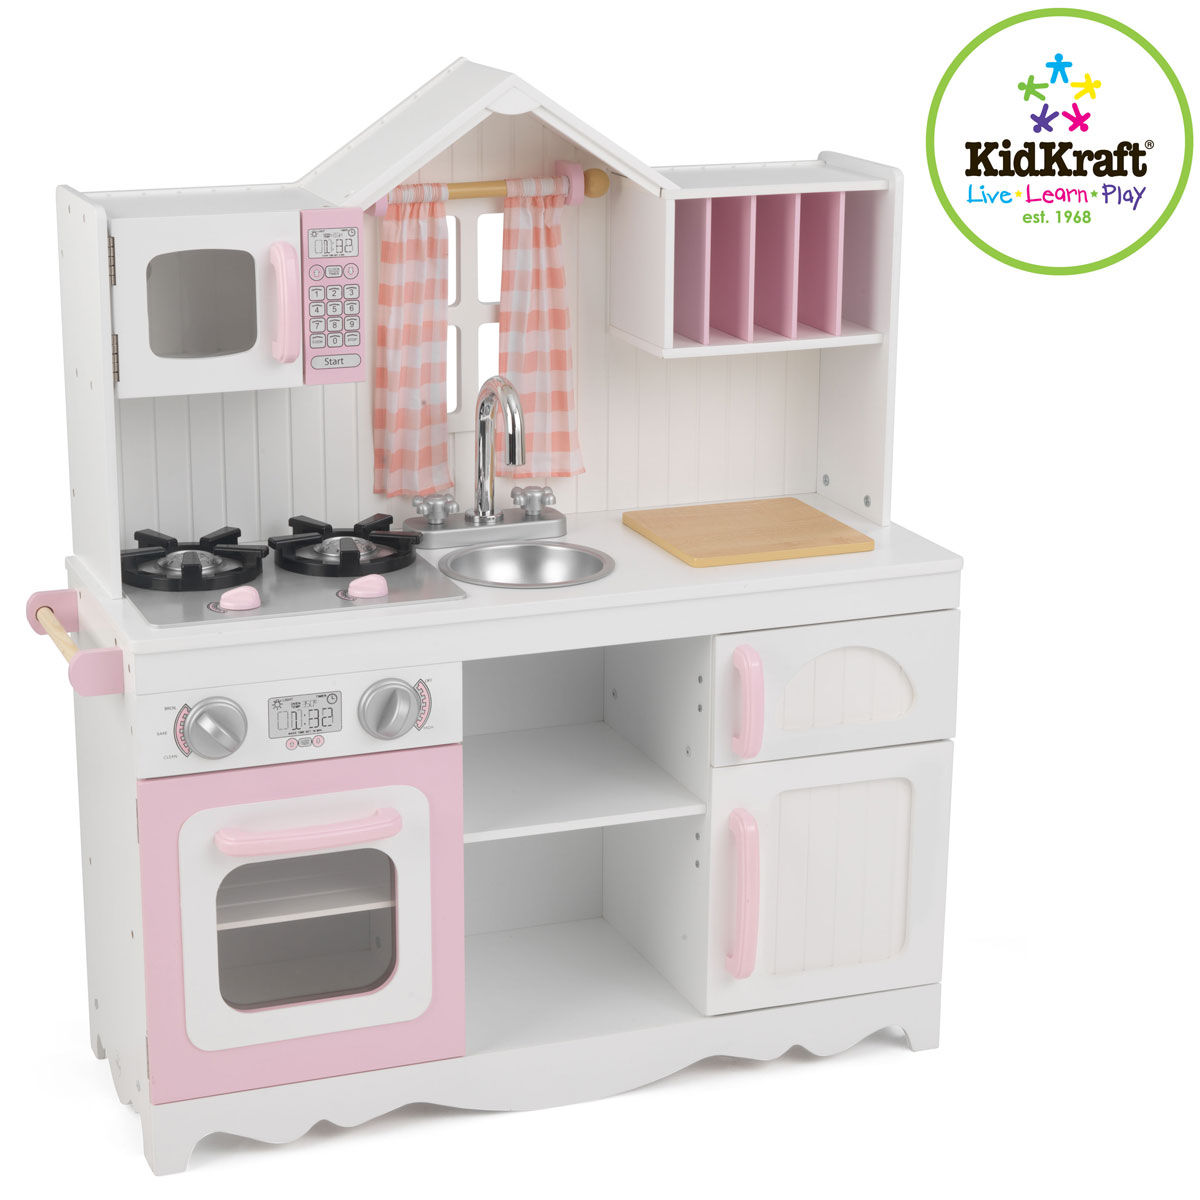 Kidkraft modern country kitchen 53222